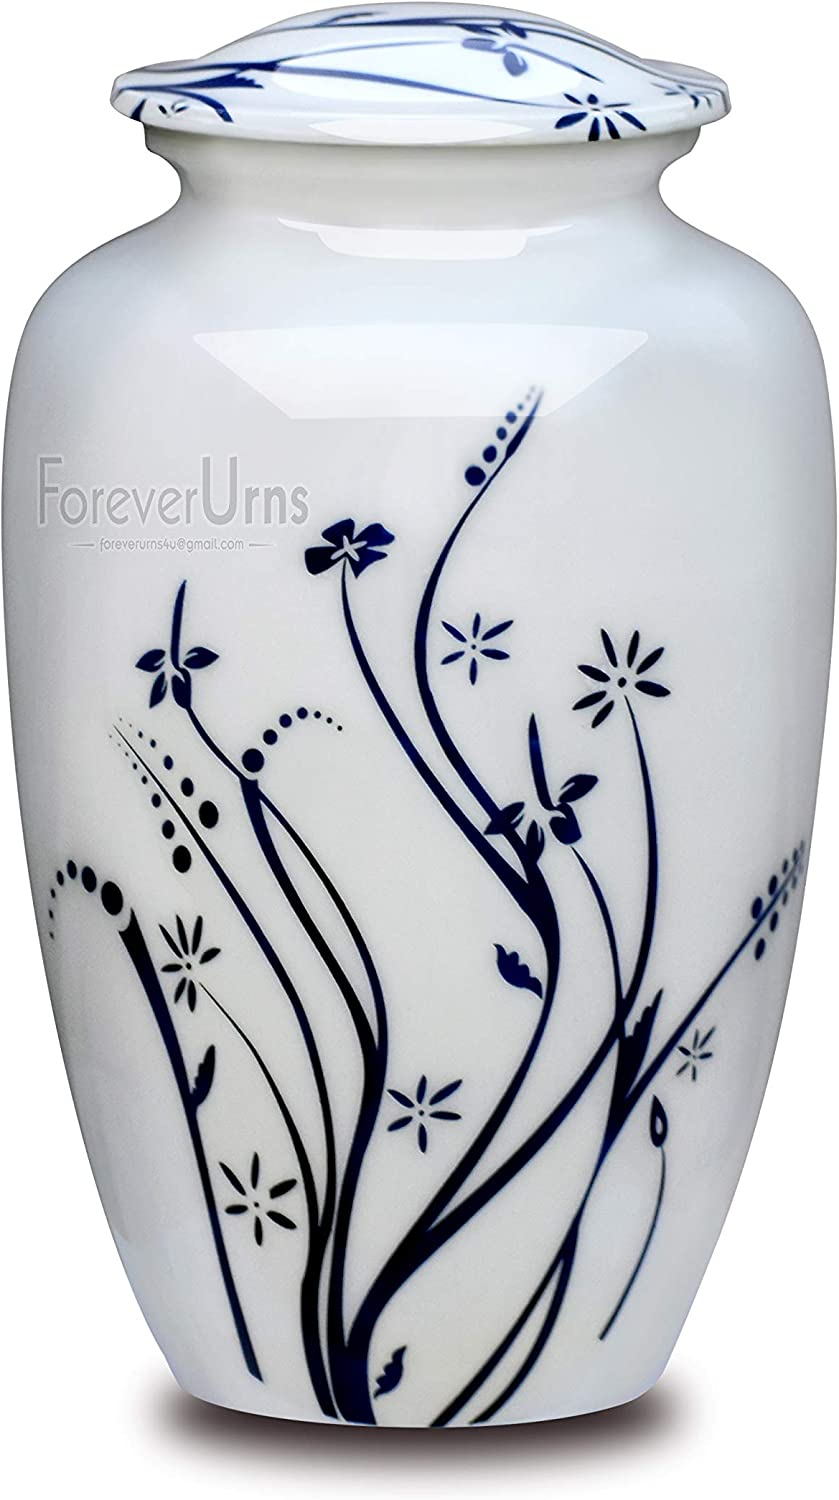 Adult Cremation URNS for Ashes- White Garden with Blue Leaf Cremation Urn for Human Ashes - Completely Handcrafted with Volume 200 Cu. in. with Velvet Protection Bag.